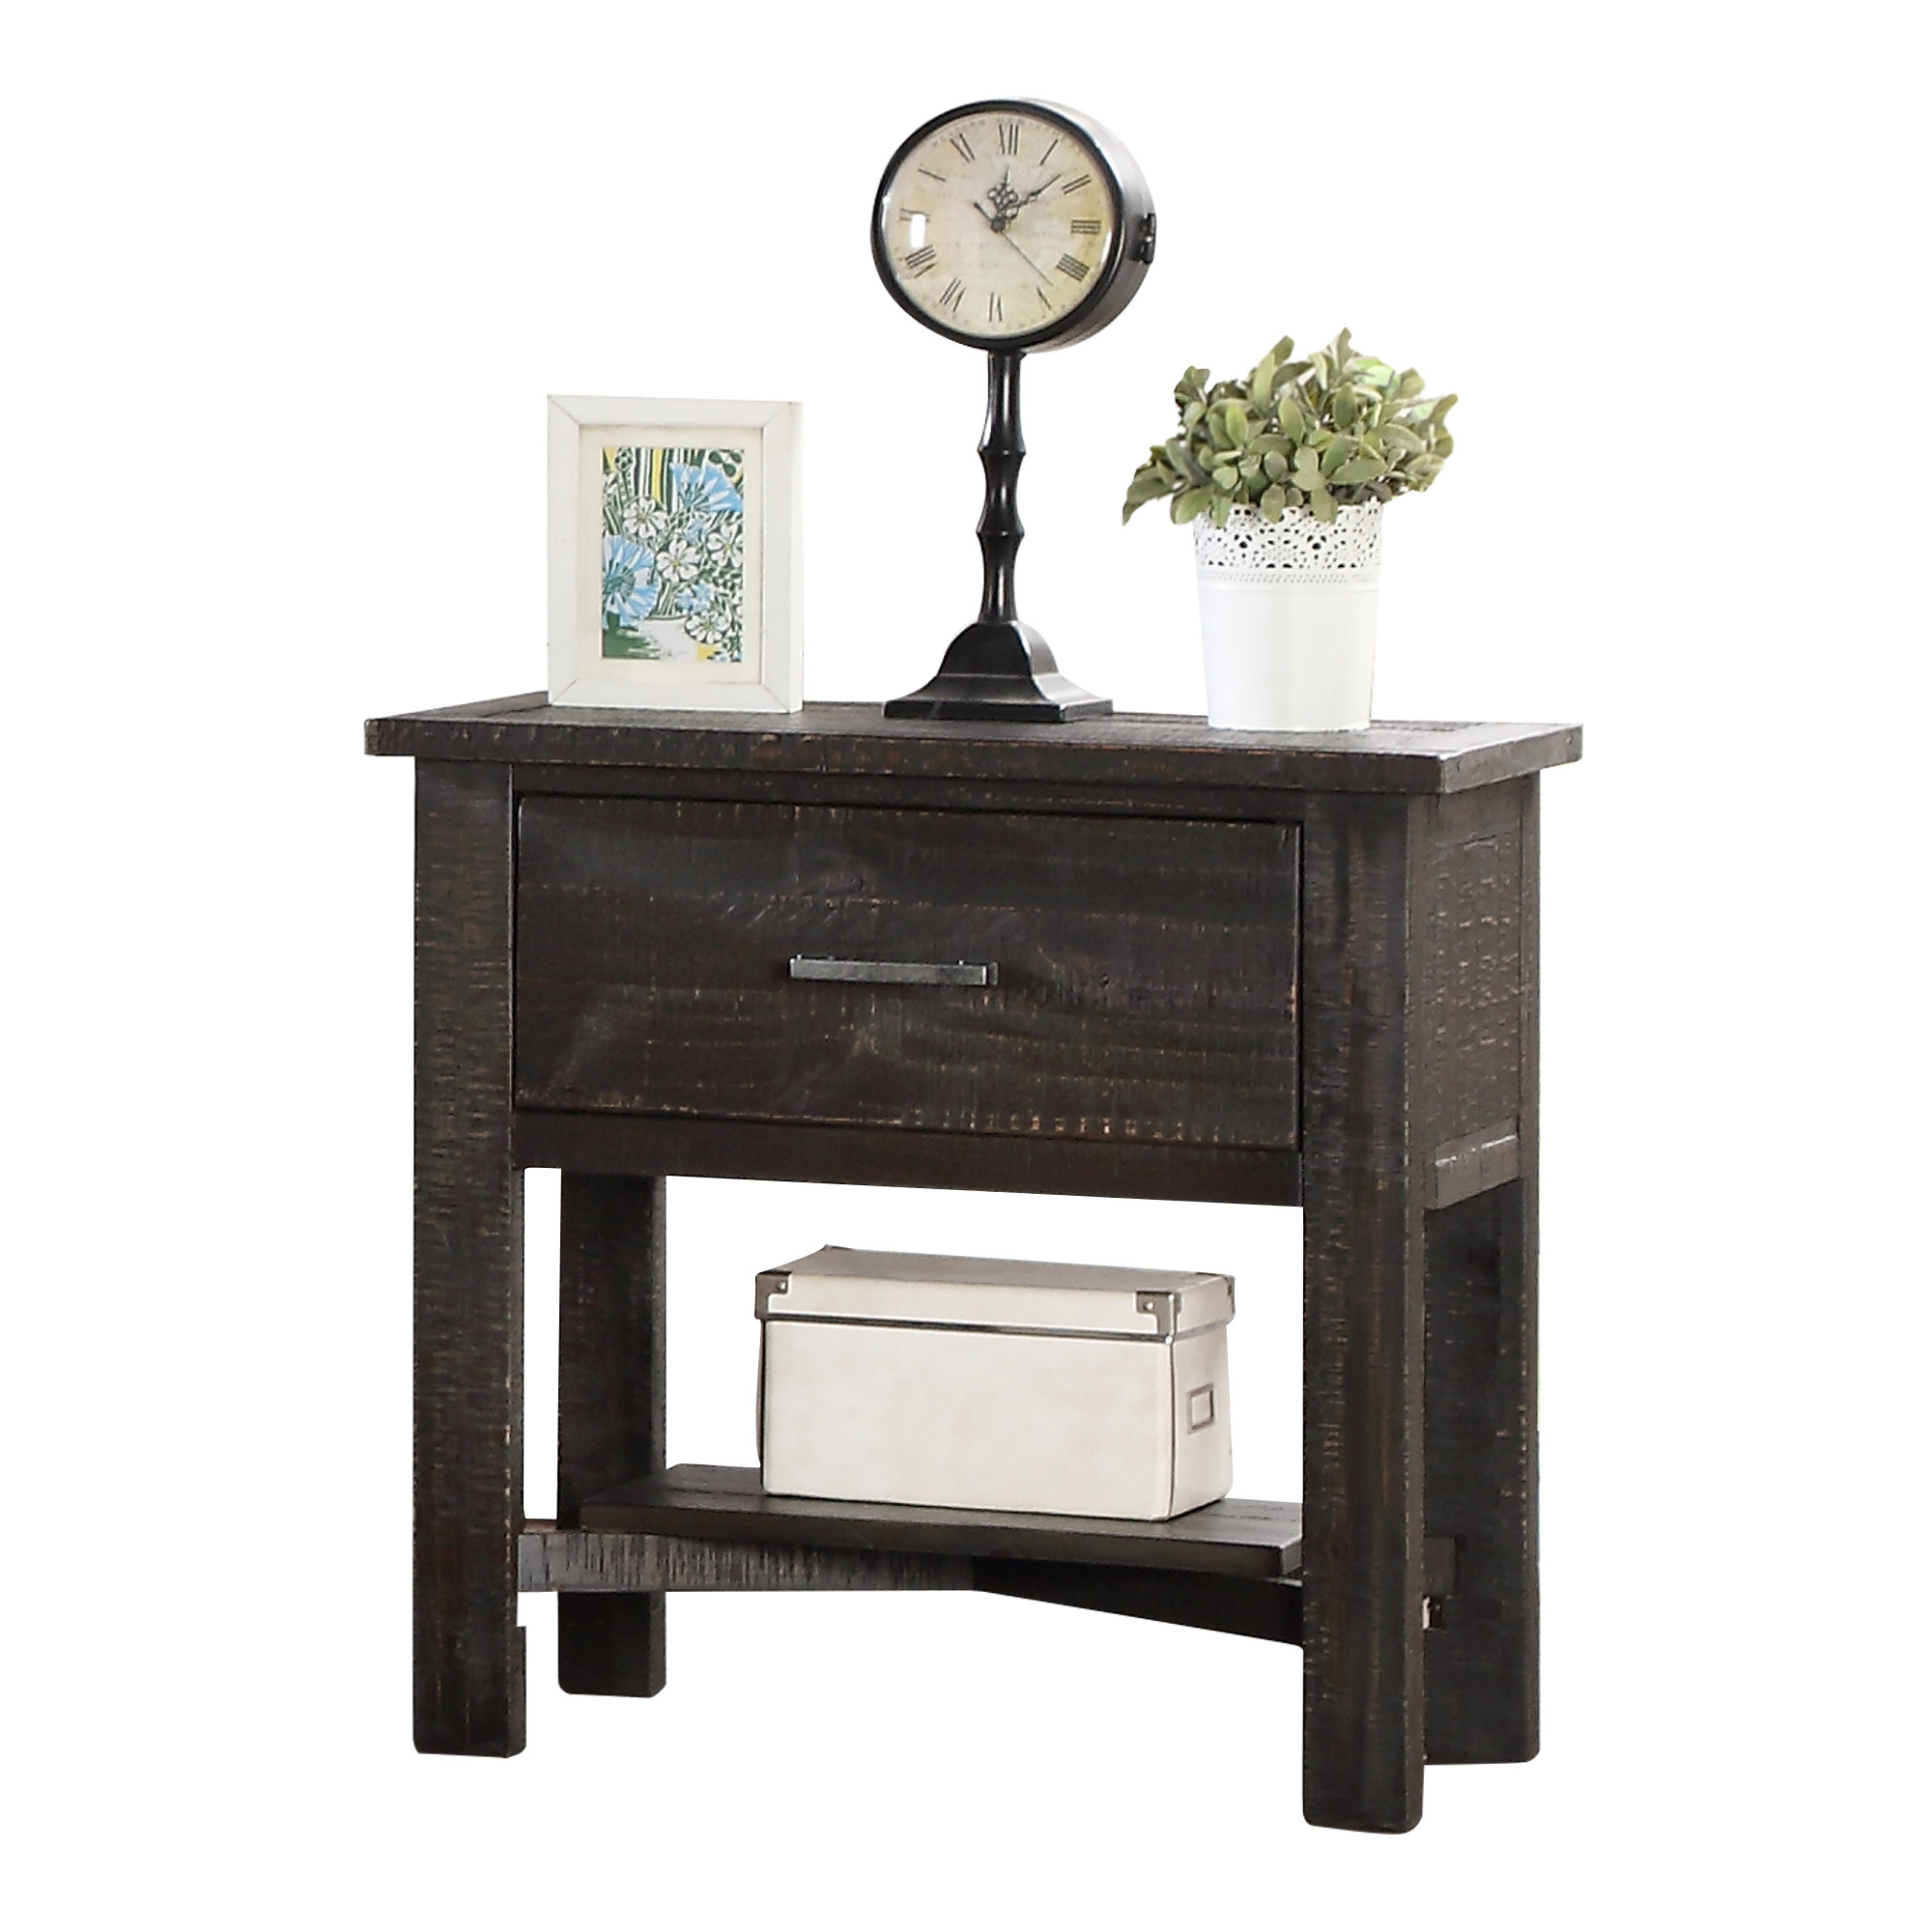 K B Furniture Rustic Wood No Tool Assembly Nightstand